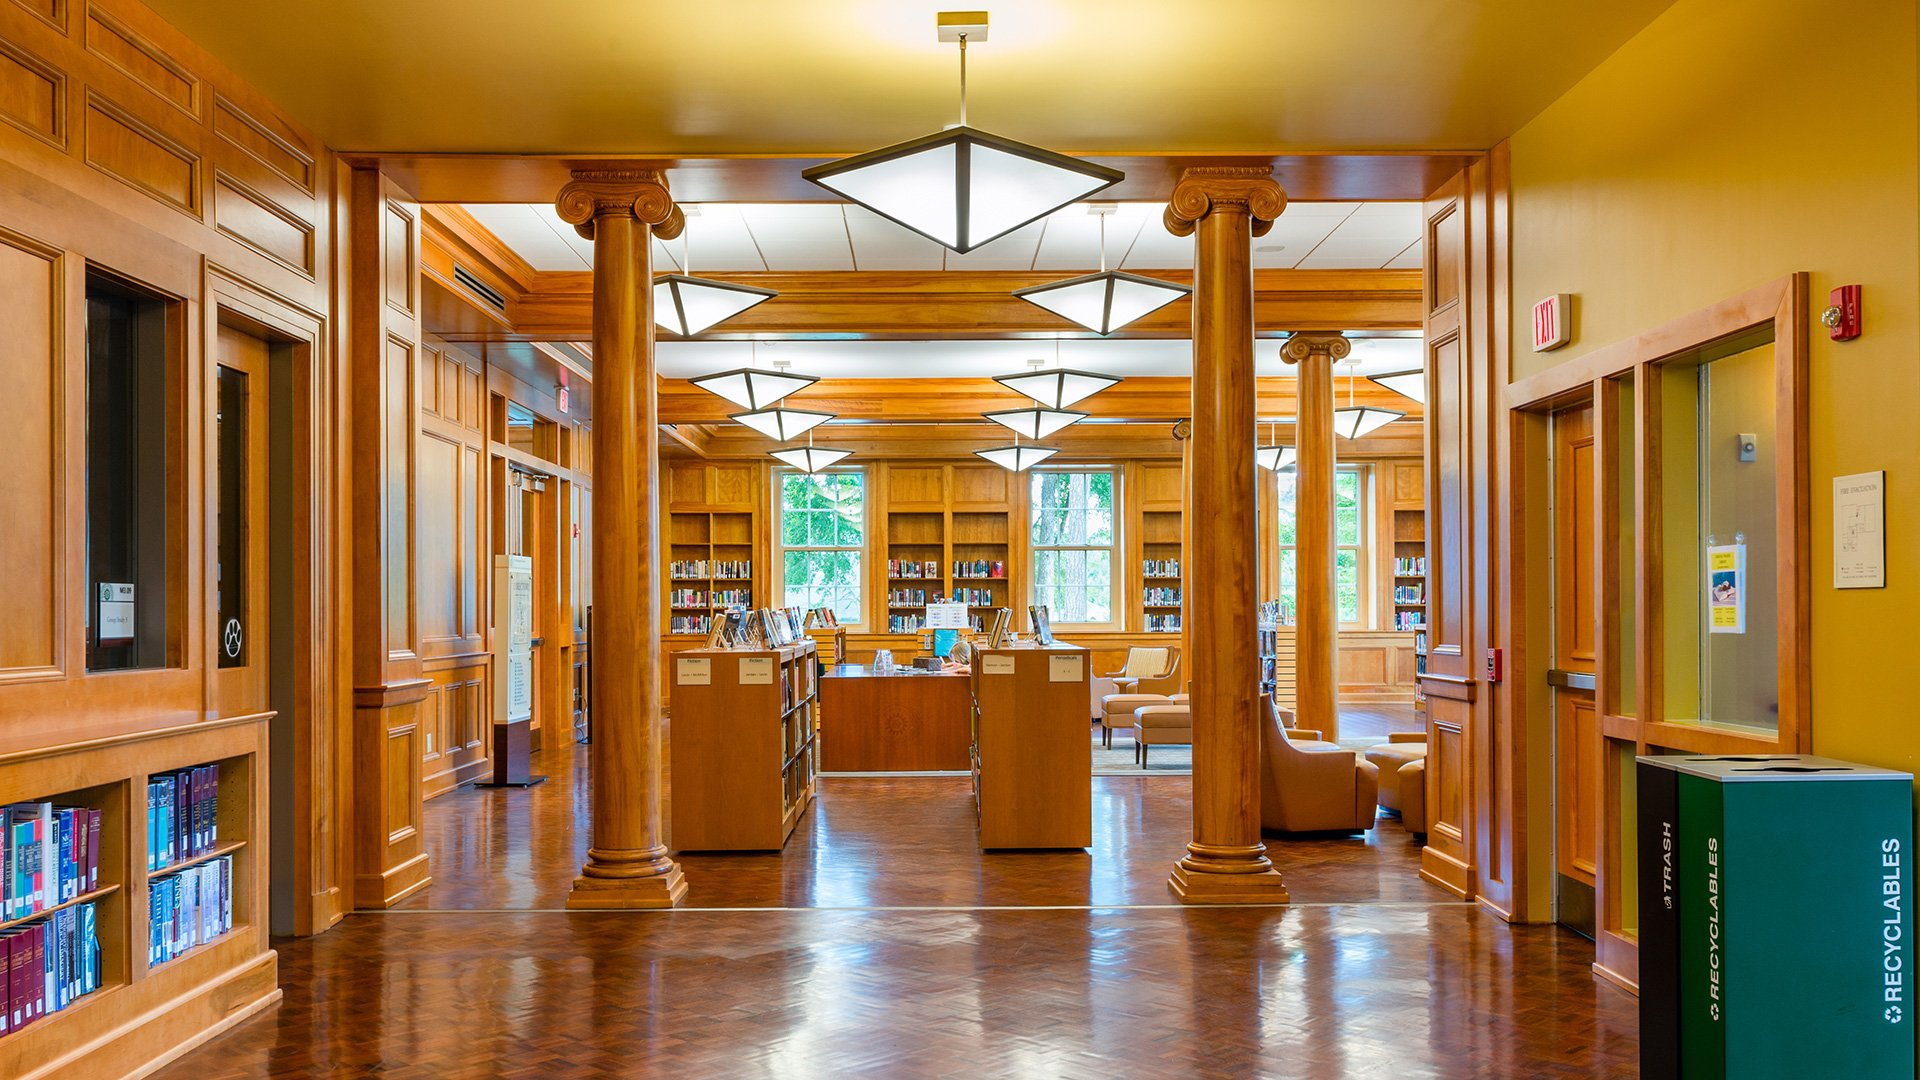 The Westminster Schools Libraries